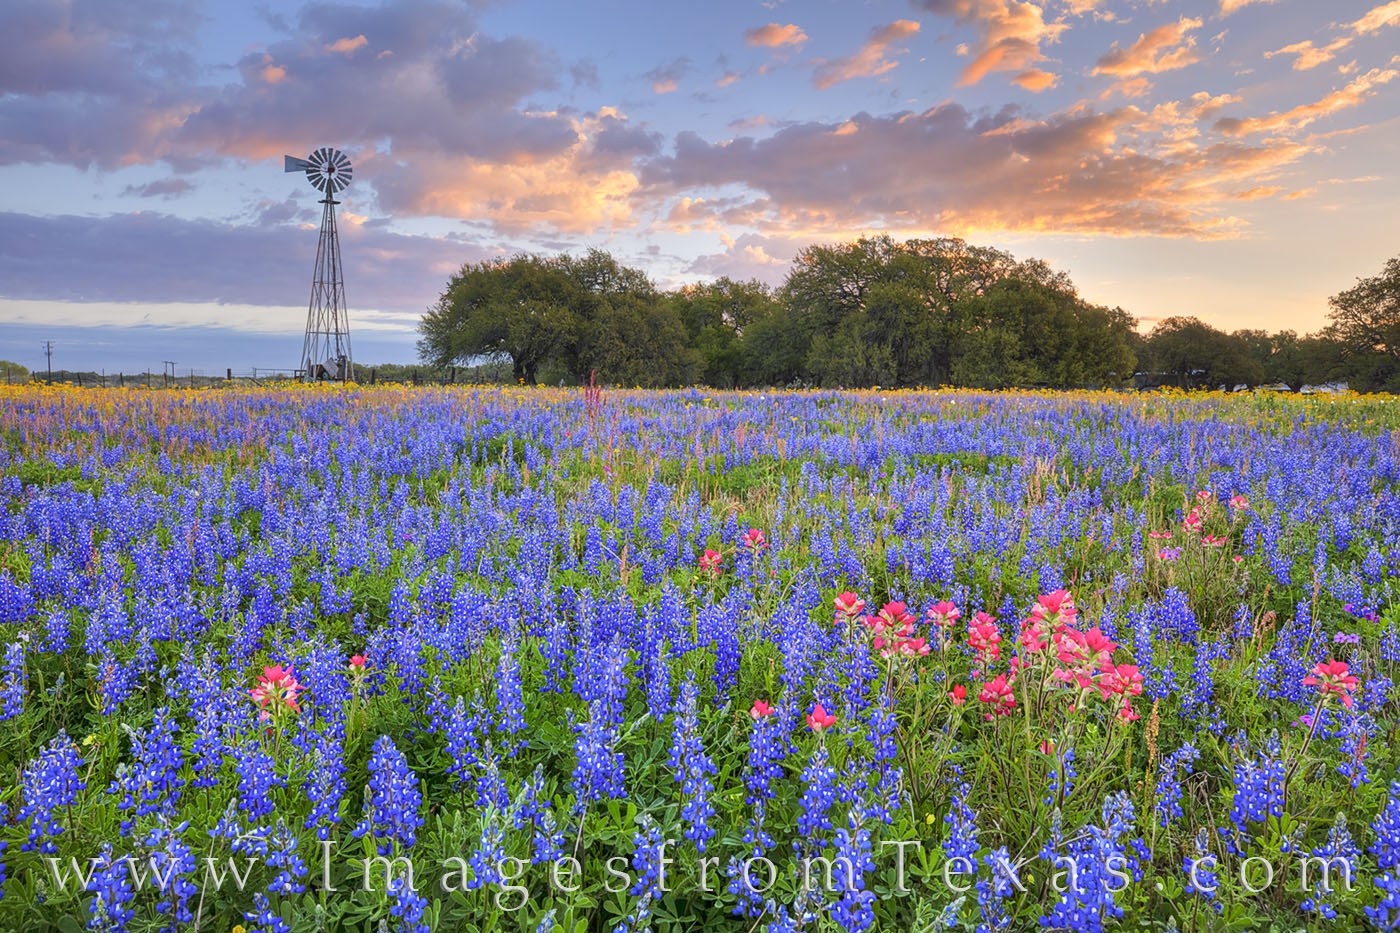 Atascosa county, wildflowers, bluebonnets, paintbrush, windmill, morning, poteet, south texas, sunrise, peace, blue, red, spring, bloom, photo